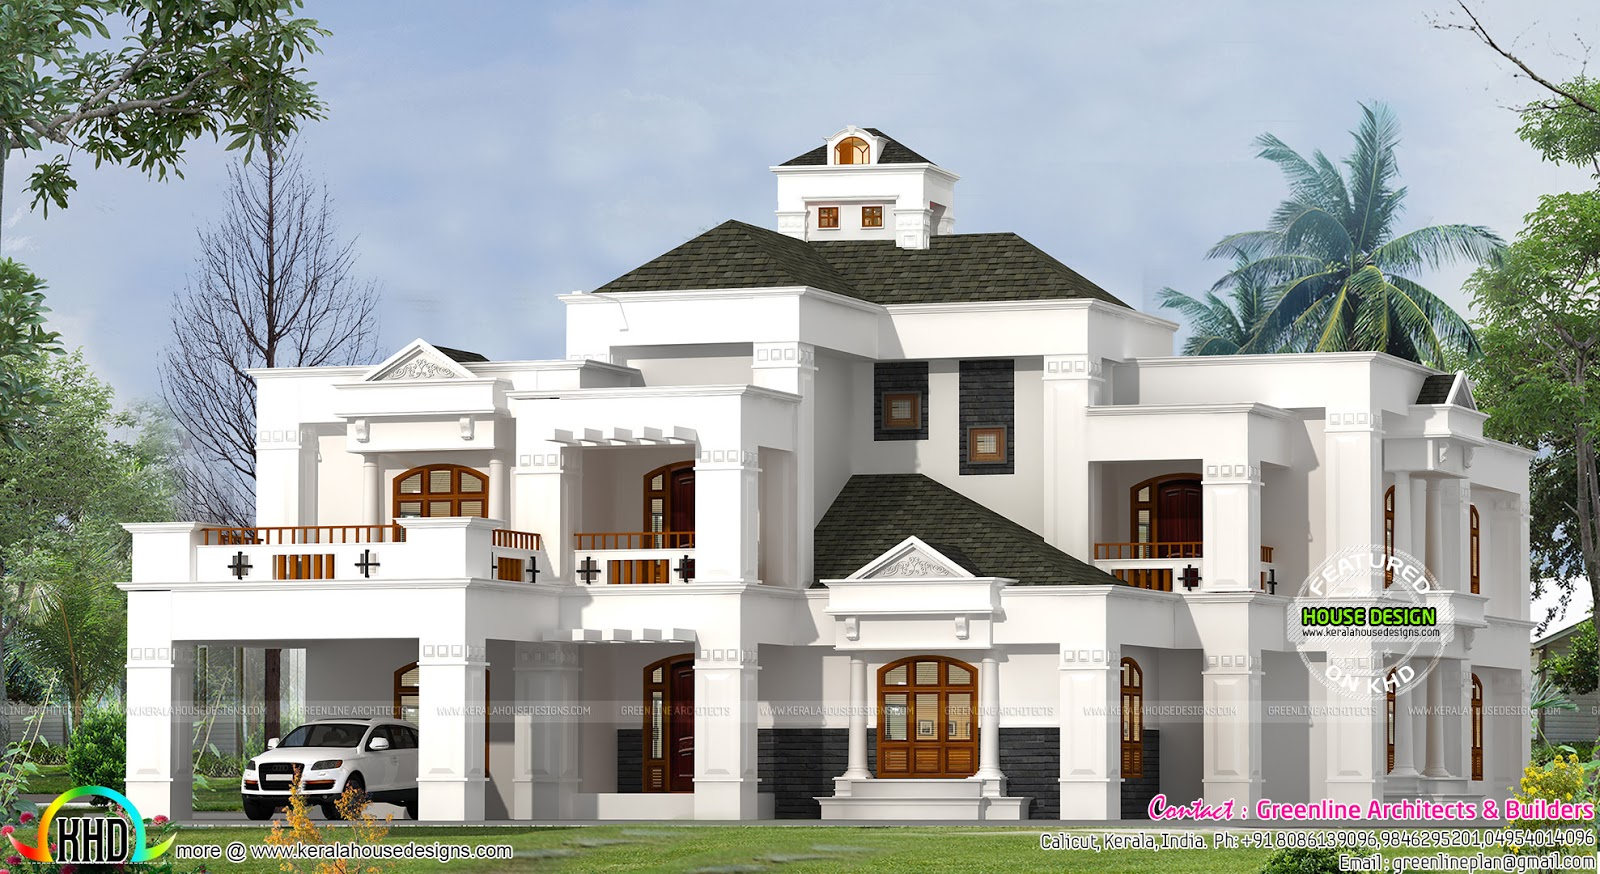 Luxury 4 bedroom villa kerala home design and floor plans for 4 bedroom villa plans